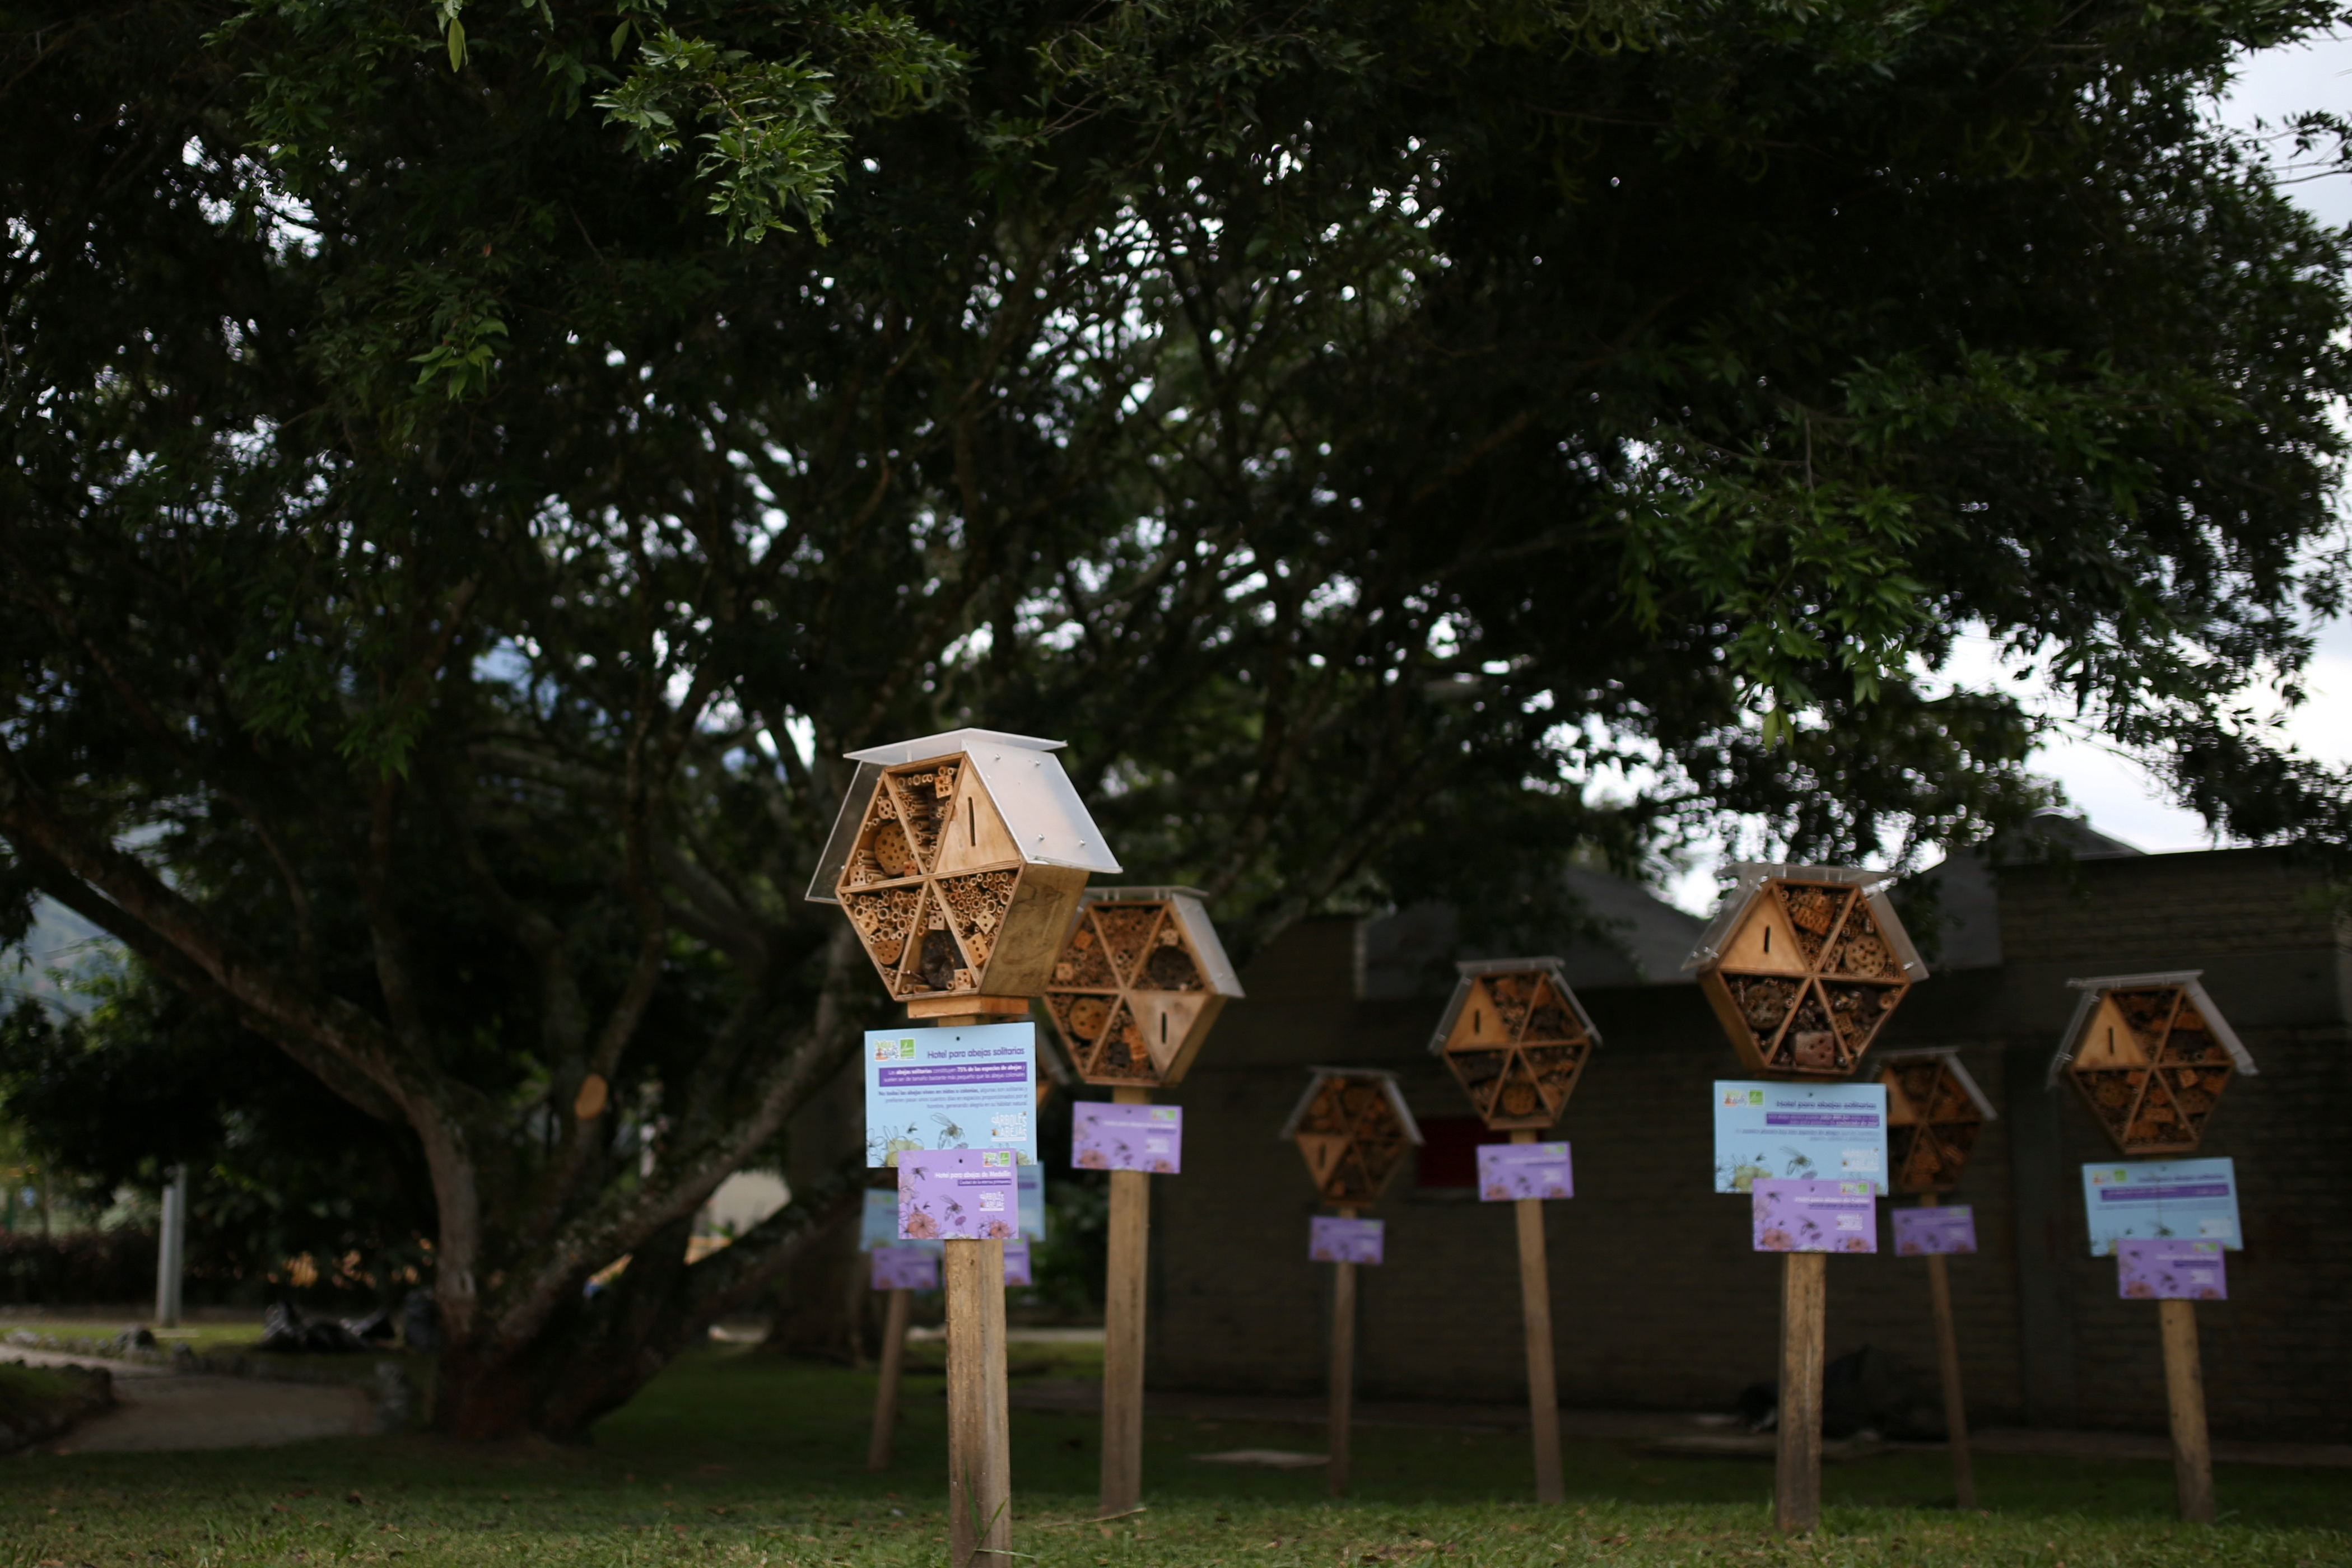 Wooden hotels for solitary bees made by the Metropolitan Area of the Aburra Valley (AMVA) are seen inside the Water Park in Barbosa, Colombia April 21, 2021.  REUTERS/Luisa Gonzalez